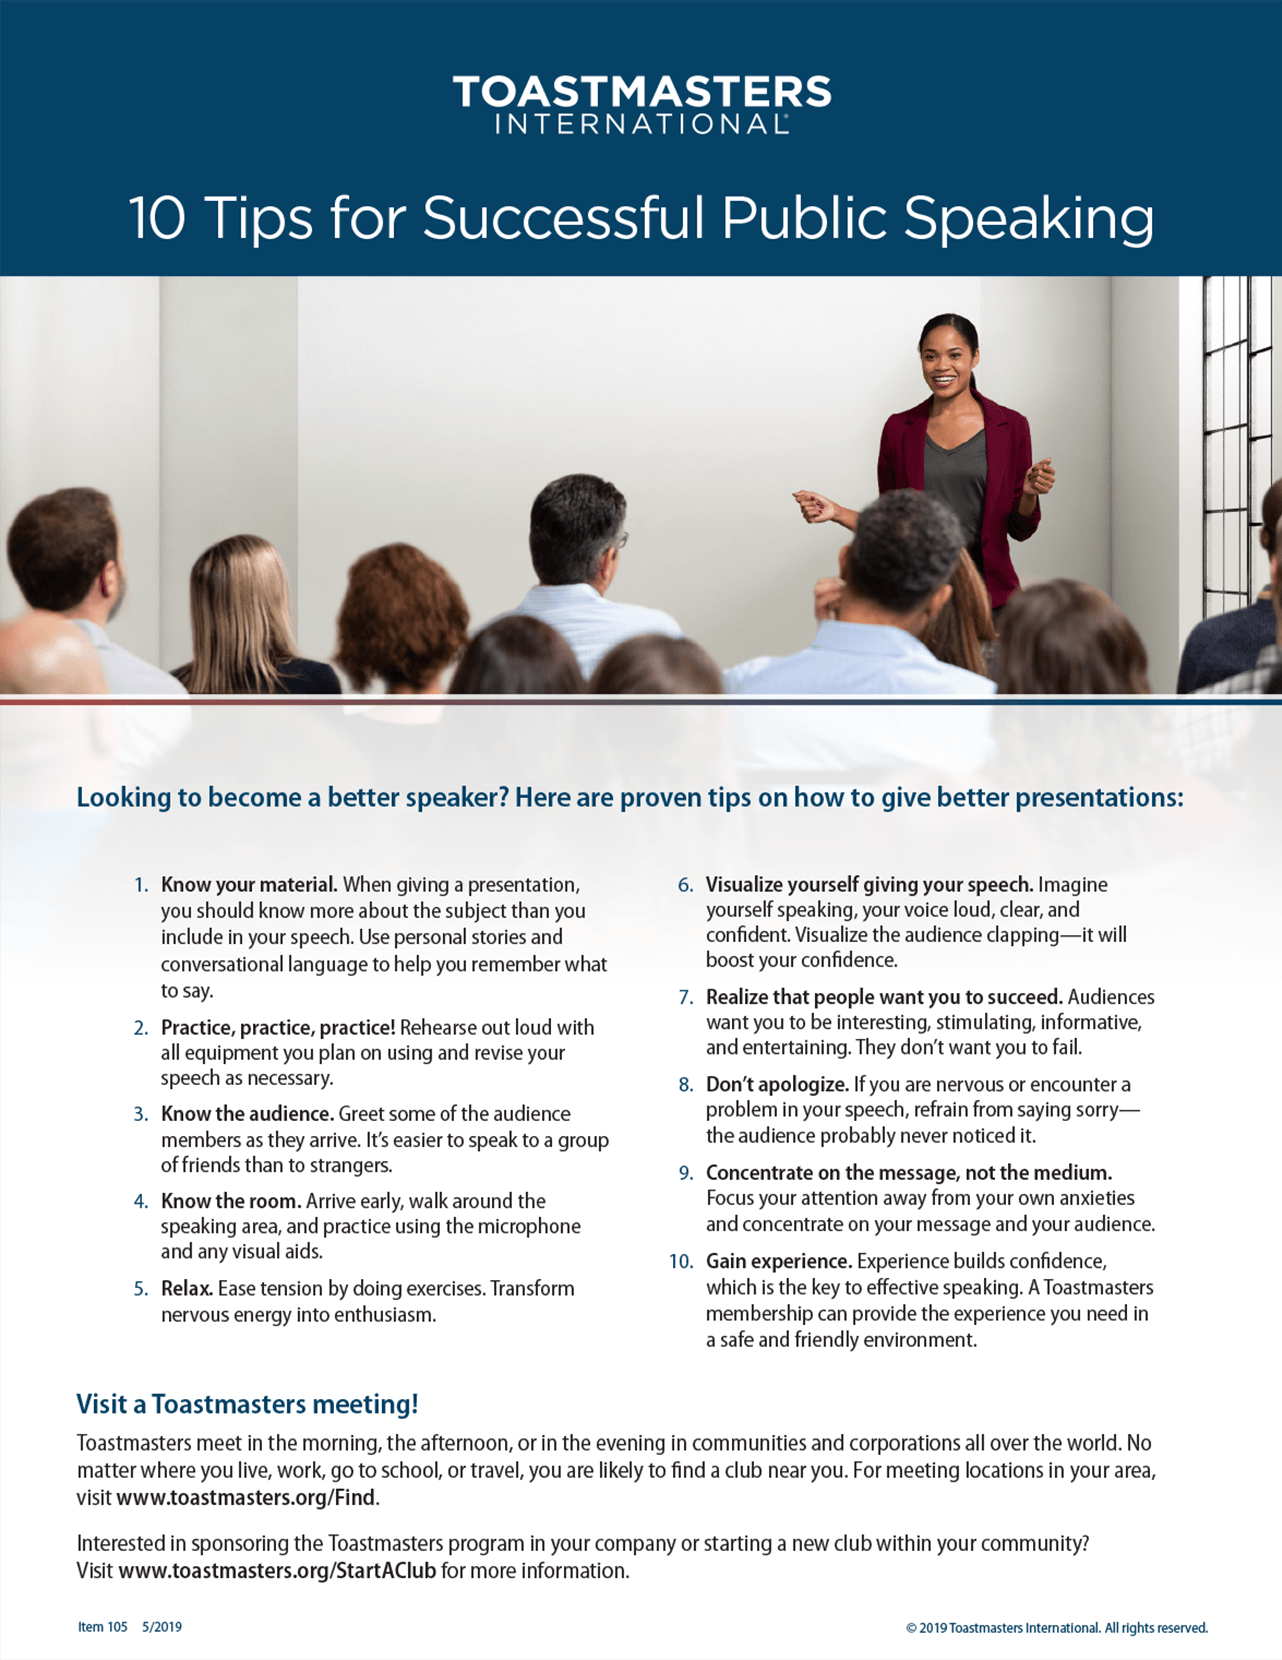 Living Room Decorating Ideas For Apartments For Cheap: 10 Tips For Successful Public Speaking (set Of 10